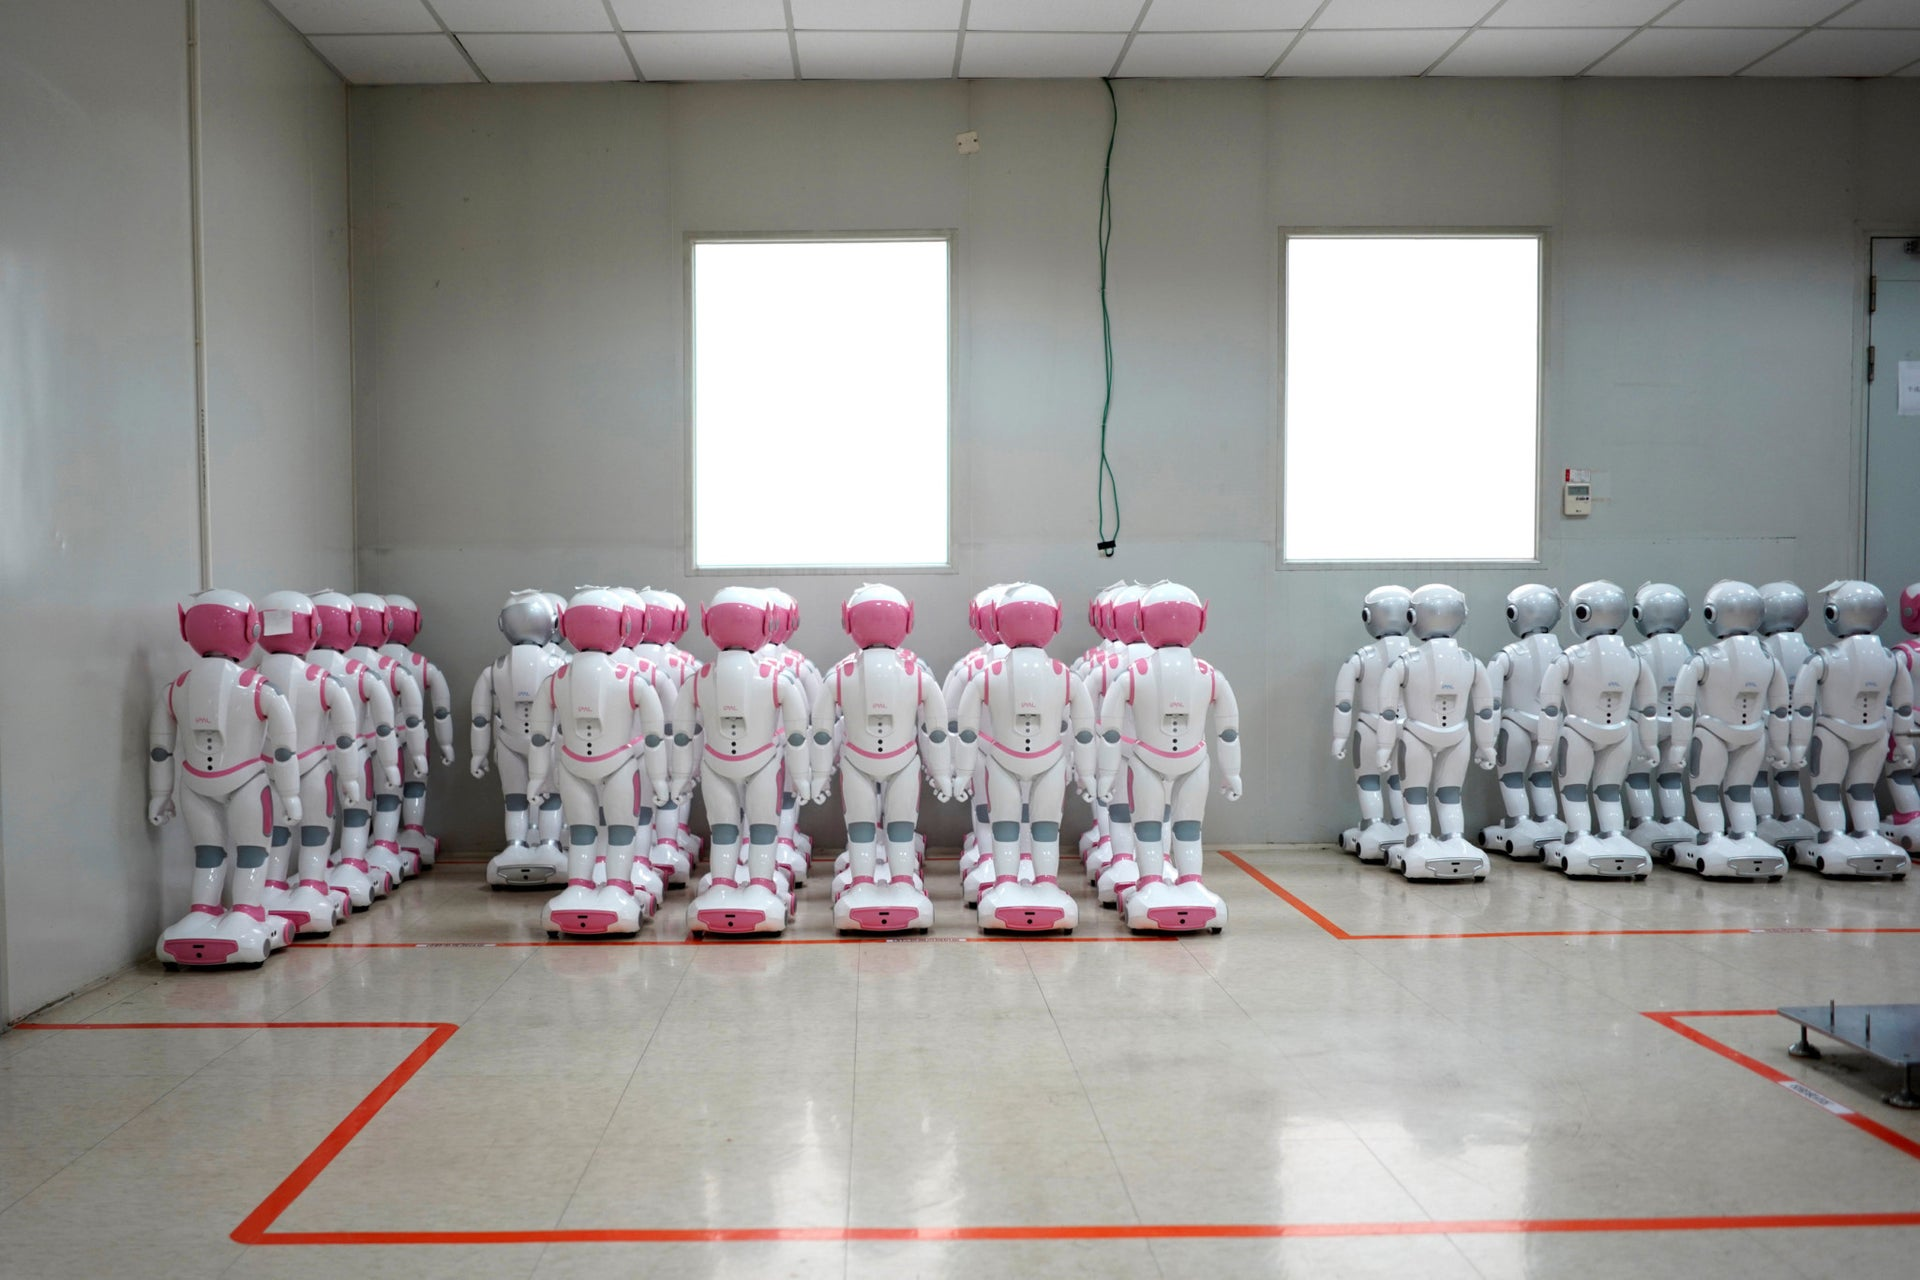 A number of robots are lined up in China